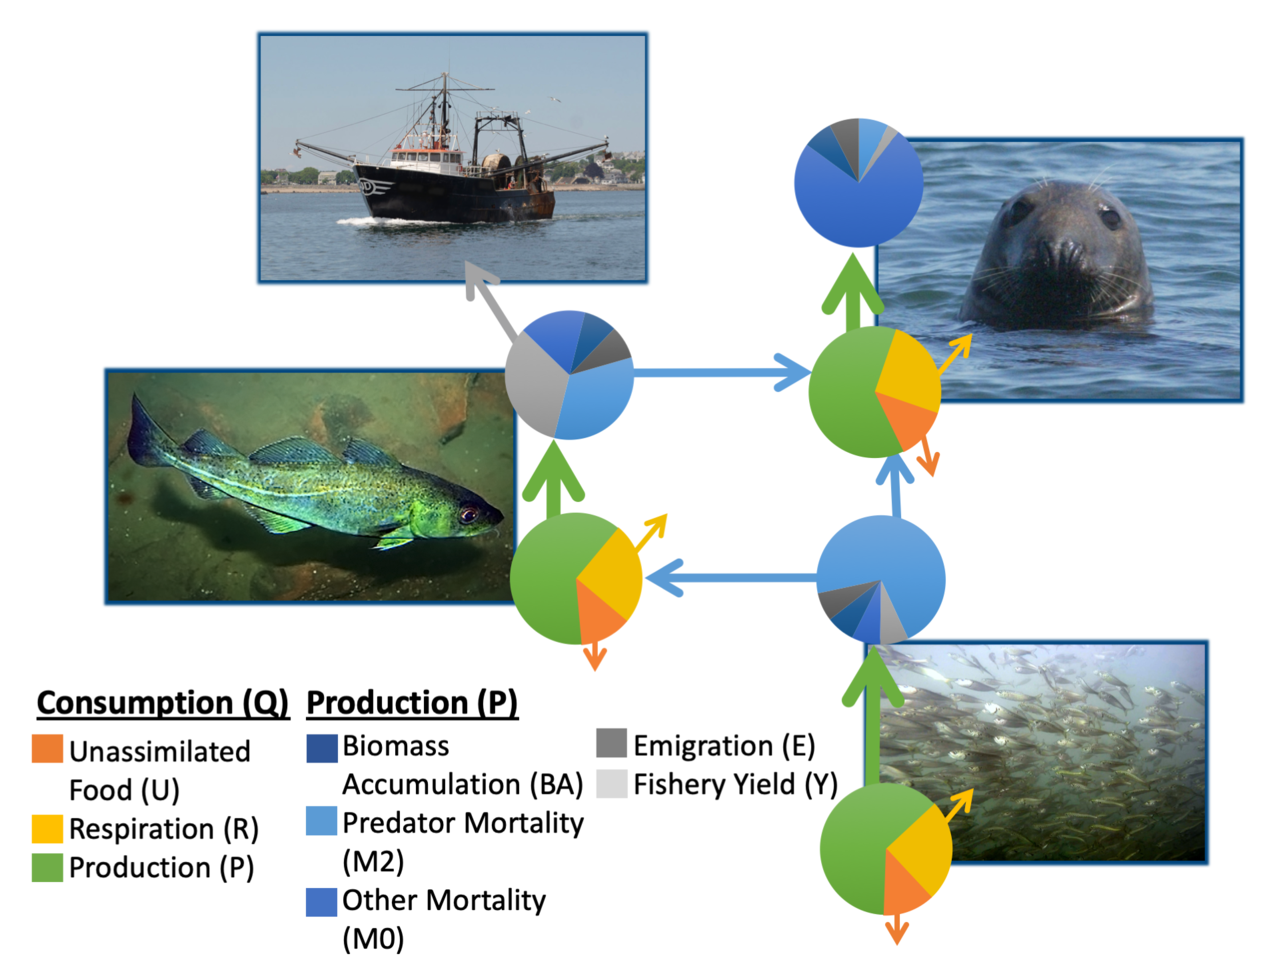 A conceptual representation of how mass balance food web models work.  Consumption needs to balance production (all gains and losses of energy).  This simplified food web is represented by a predator, prey, marine mammal, and fishery.